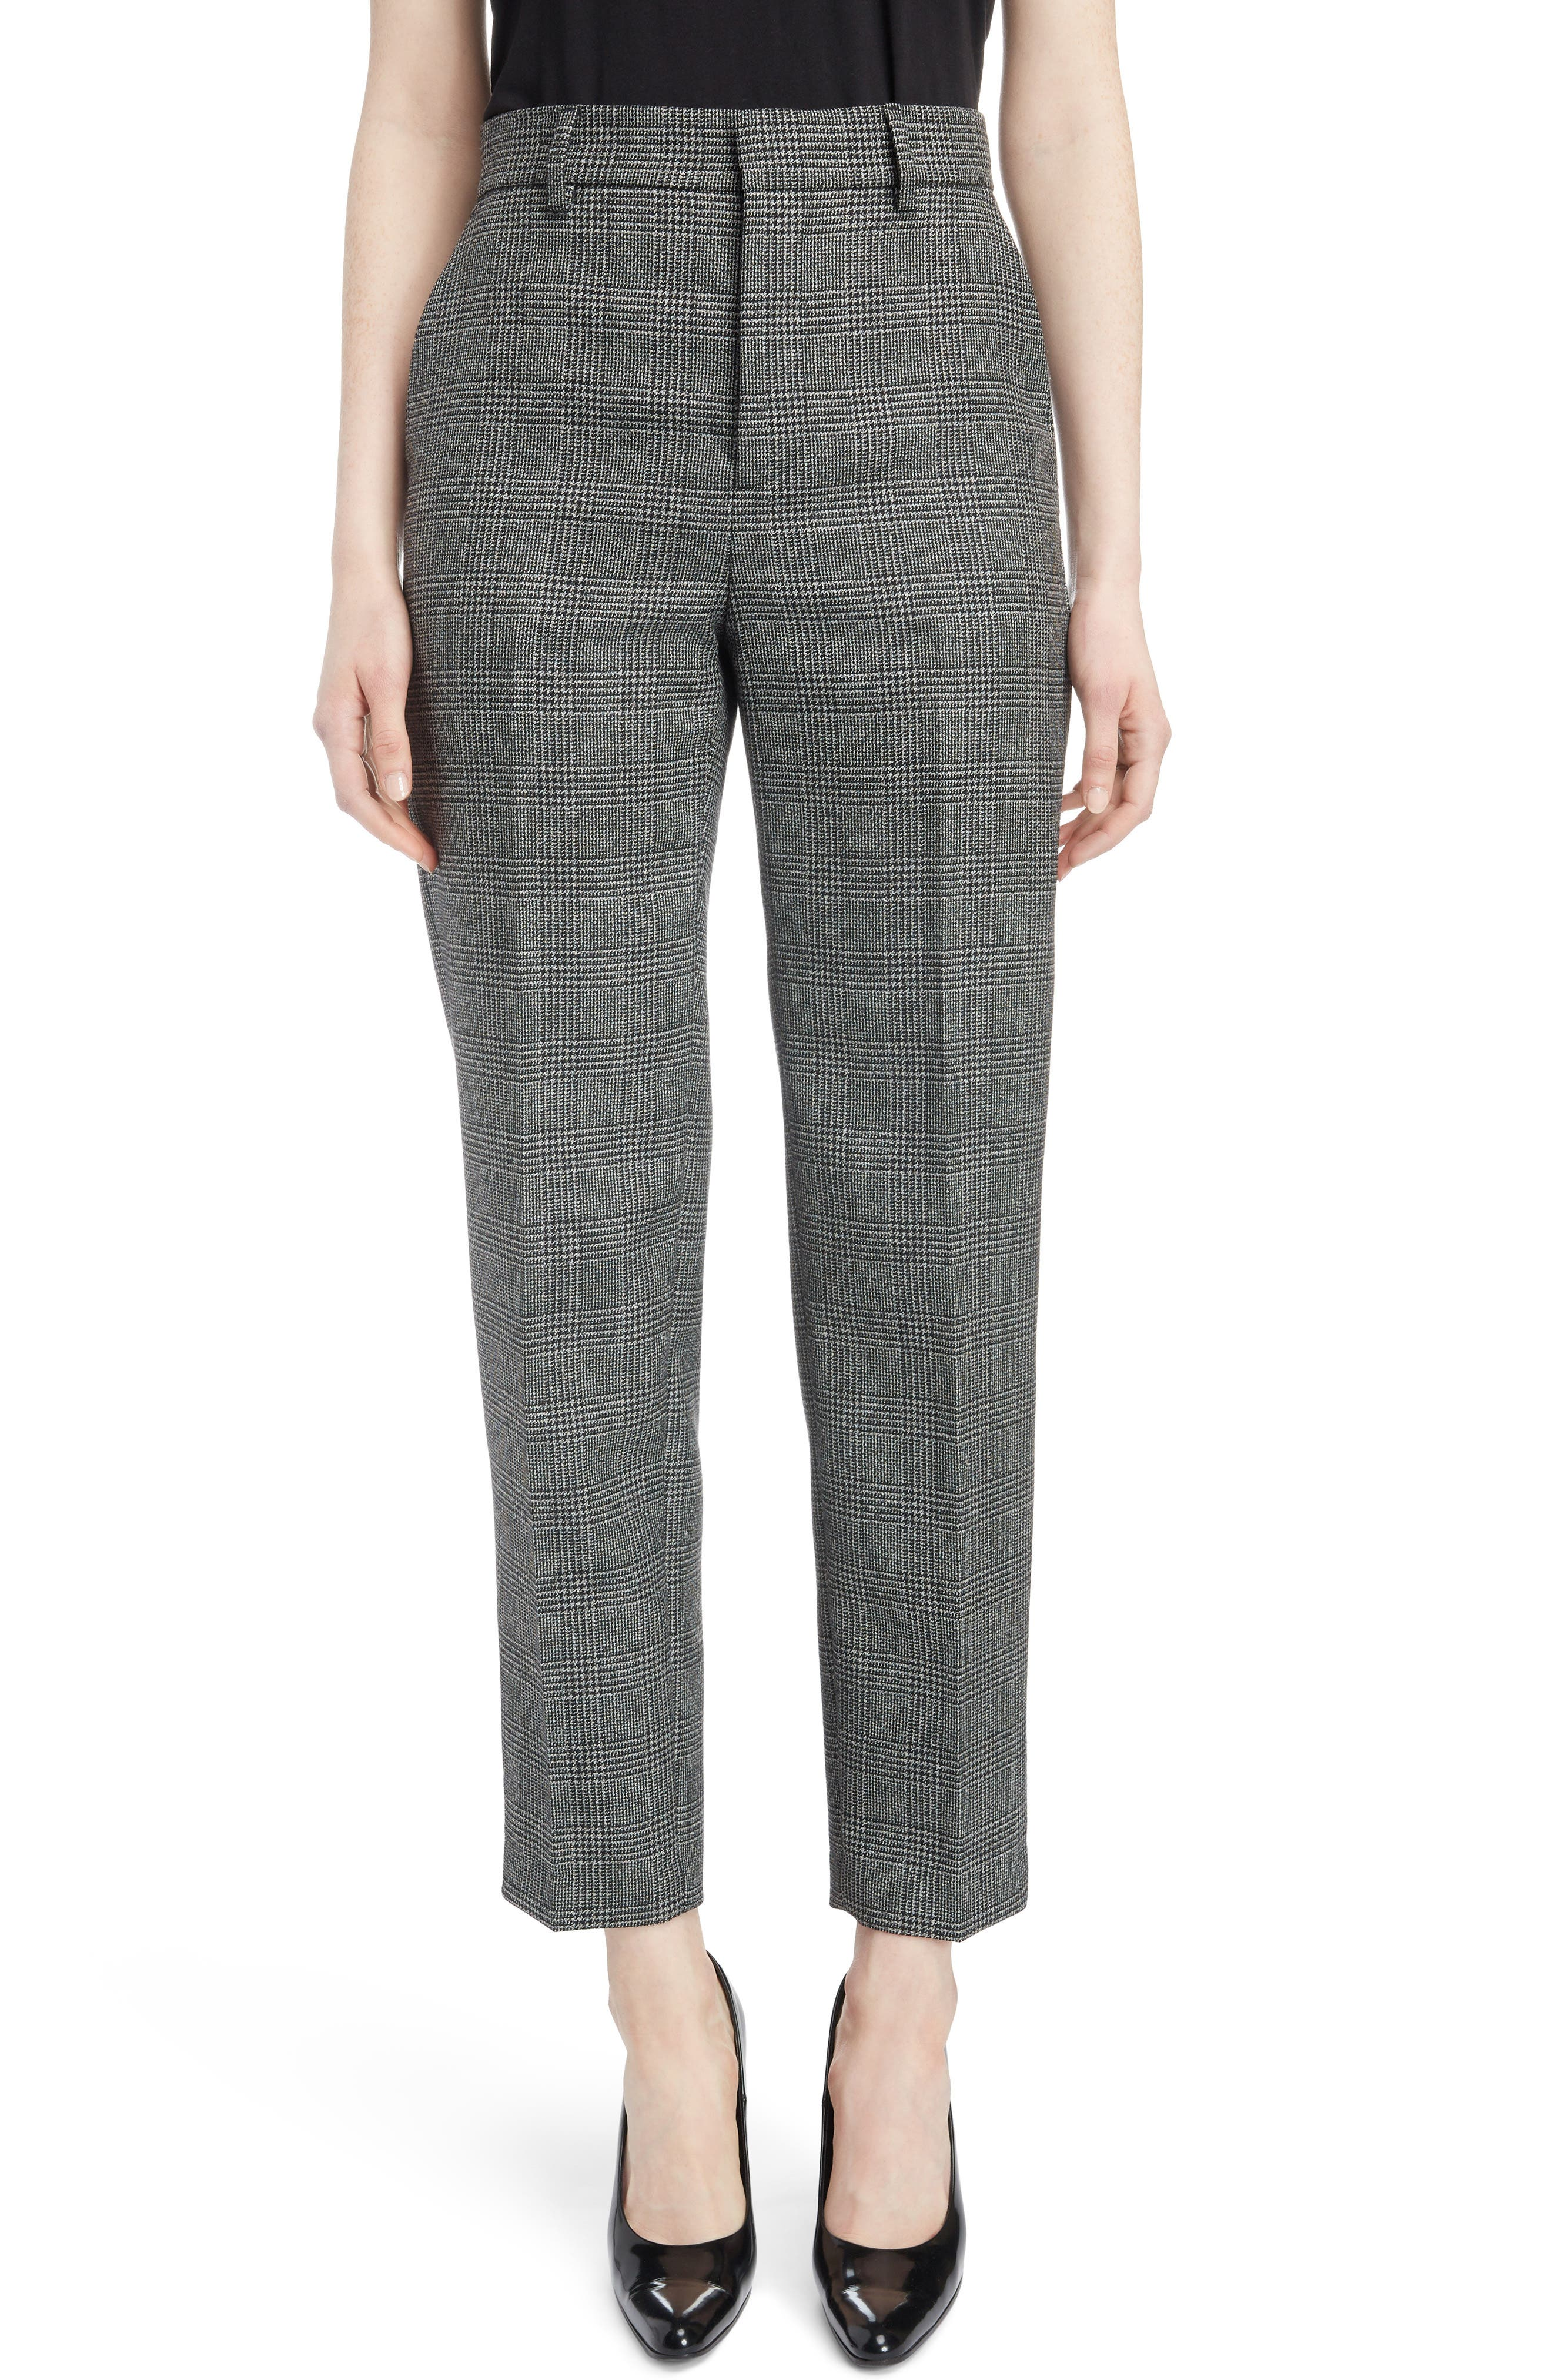 Prince of Wales Wool Carrot Trousers,                             Main thumbnail 1, color,                             1070-BLACK/ WHITE